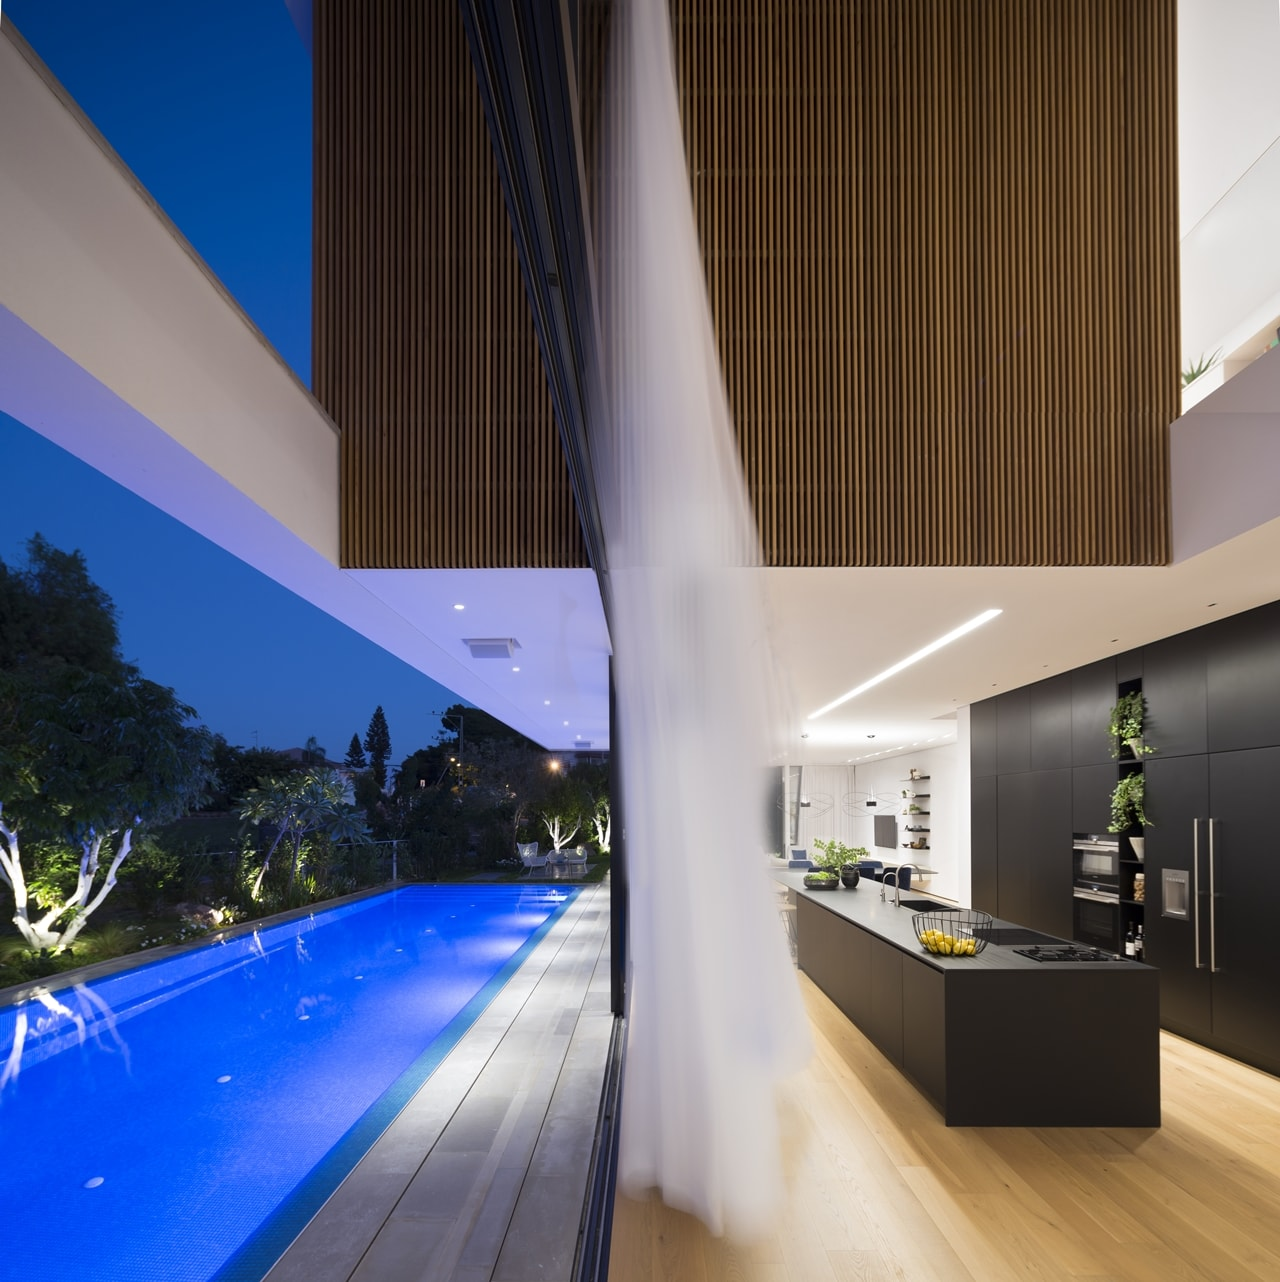 Top 50 Modern House Designs Ever Built: Sliding Glass Wall Used For Remarkable Indoor-Outdoor